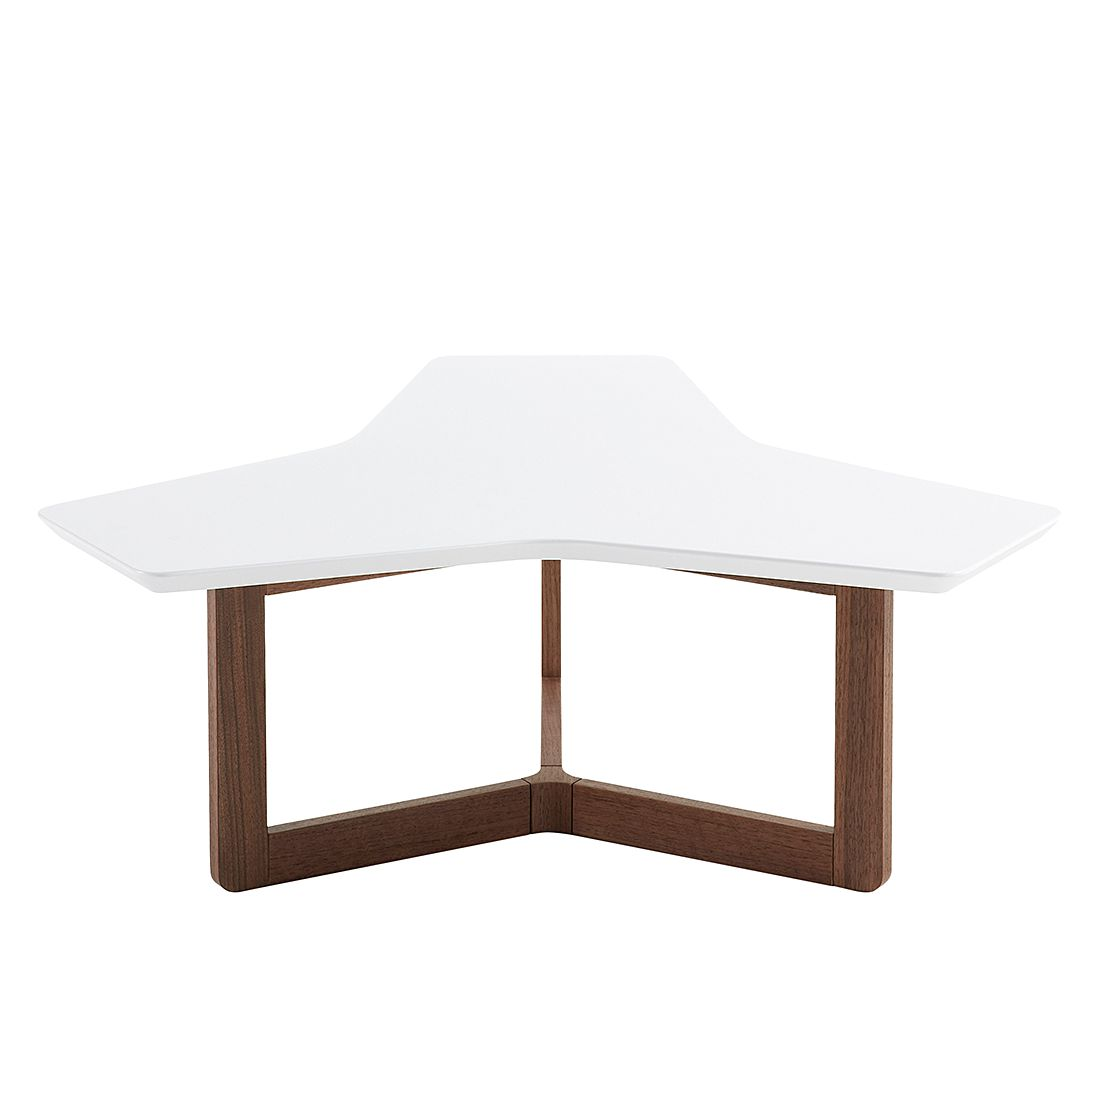 Table basse Larne - Blanc mat / Noyer, Morteens